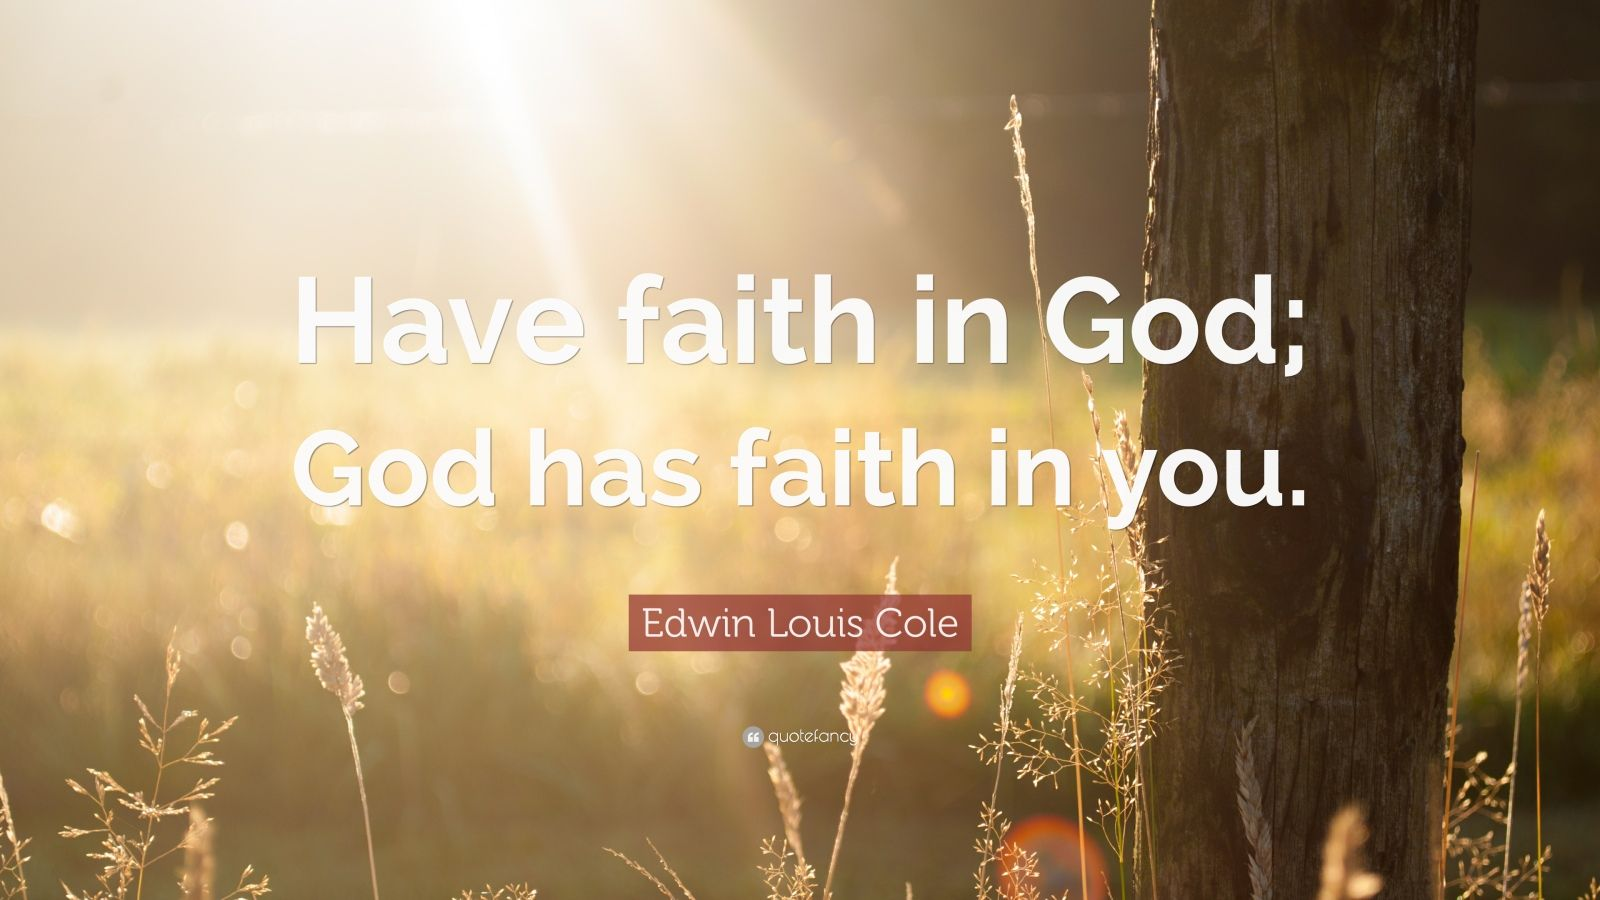 Nick Vujicic Quotes Wallpaper Edwin Louis Cole Quote Have Faith In God God Has Faith